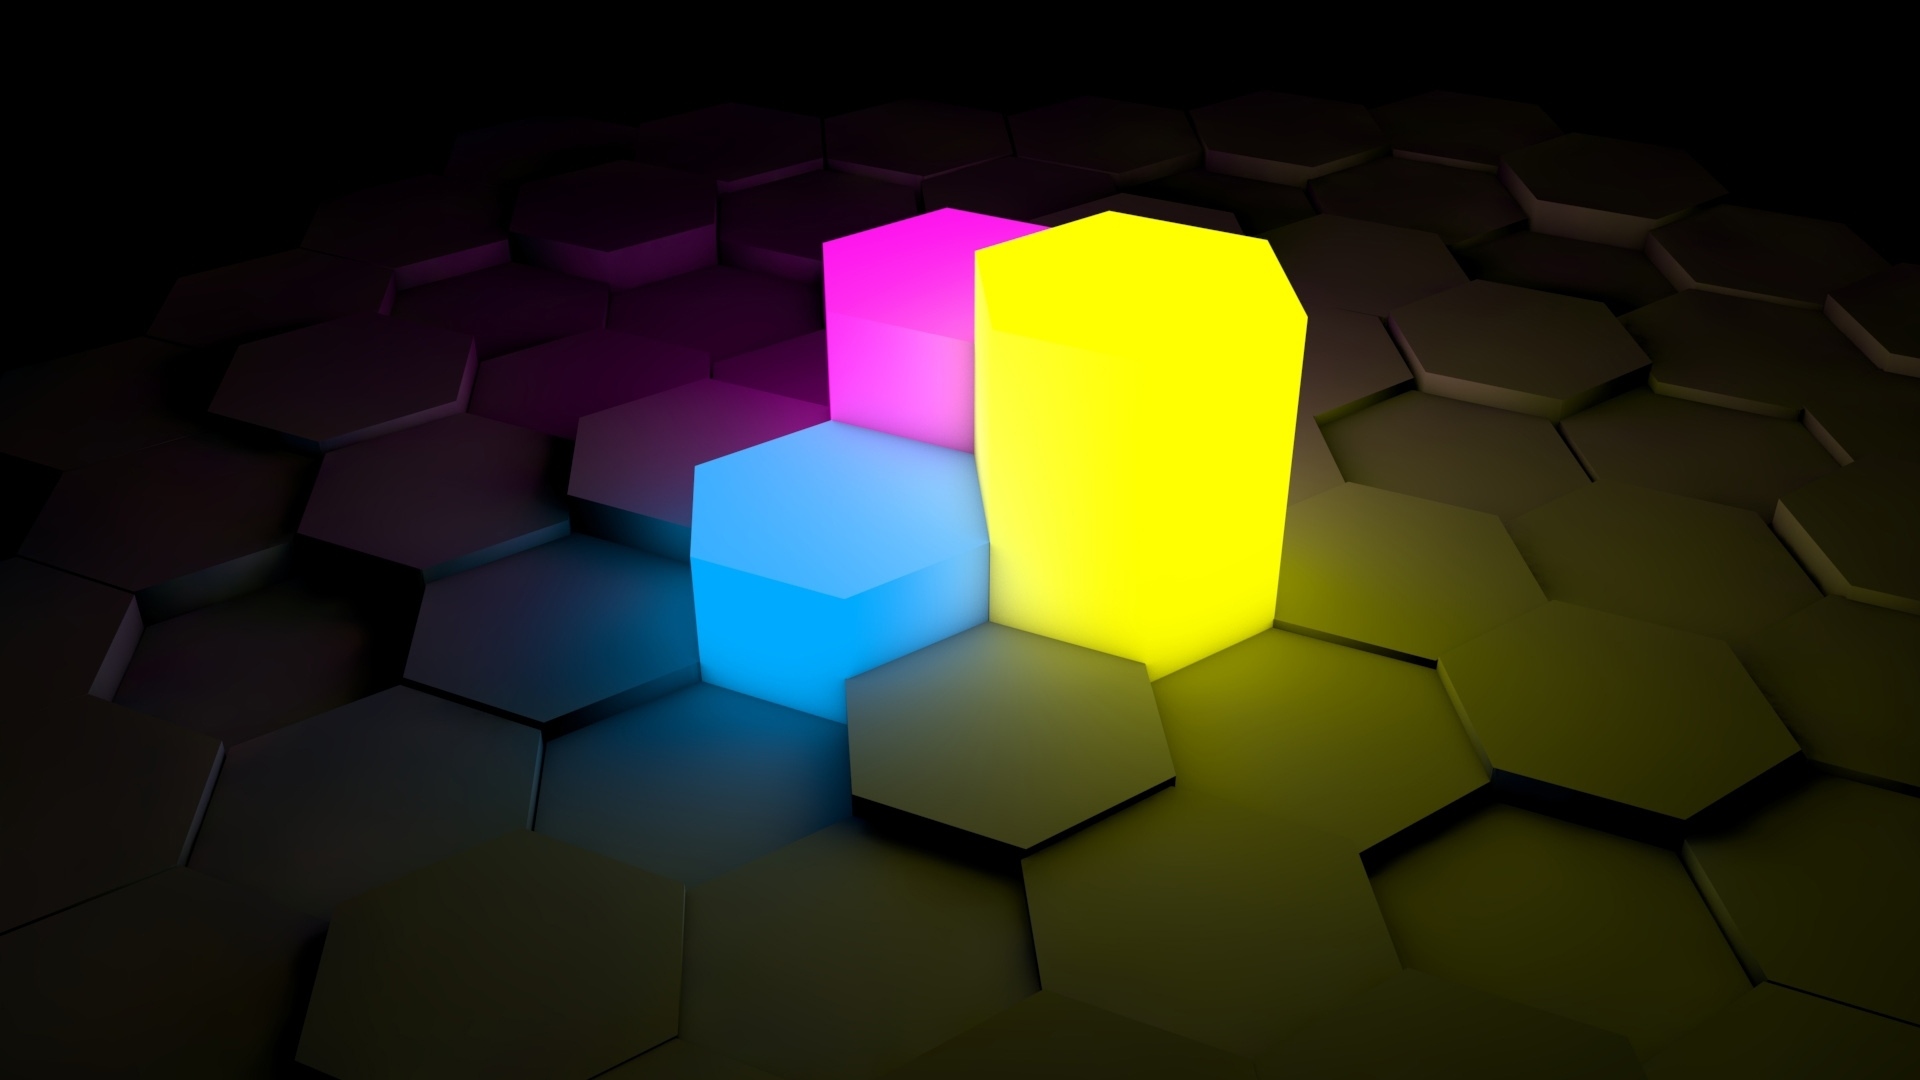 Neon Surface 3D Wallpaper   HQ Wallpapers download 100 high 1920x1080